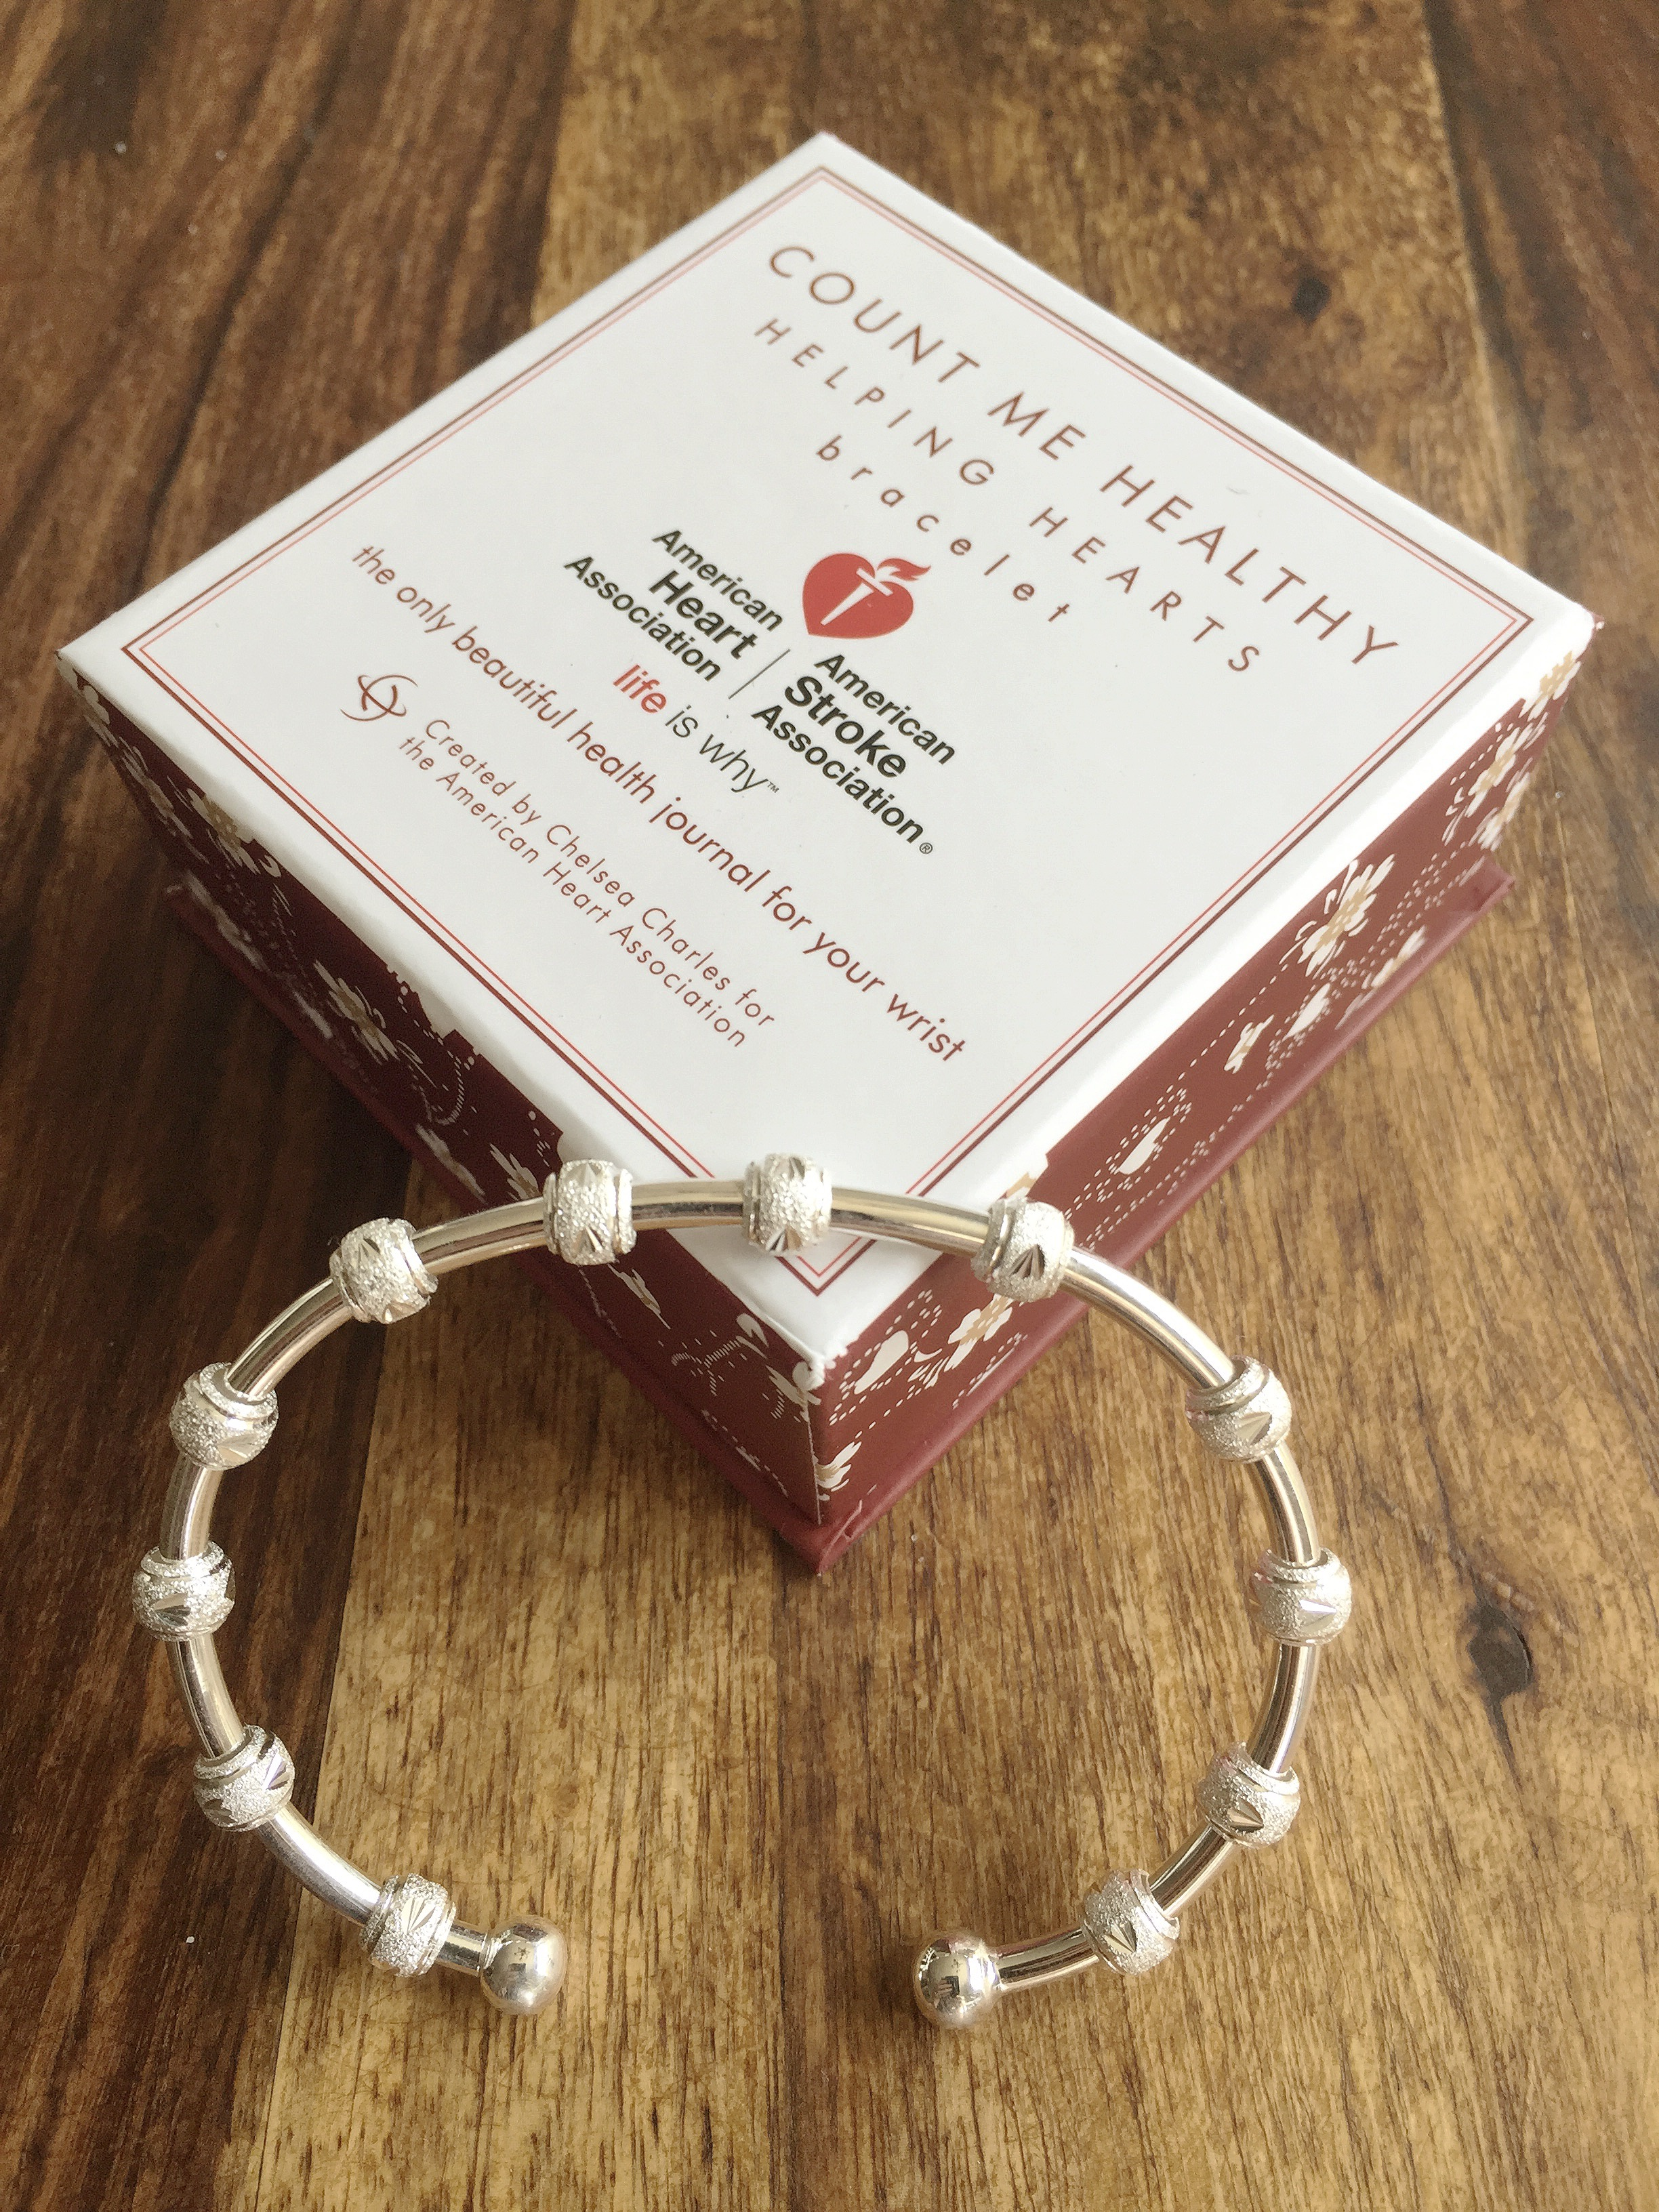 Count Me Healthy bracelet for the American Heart Association